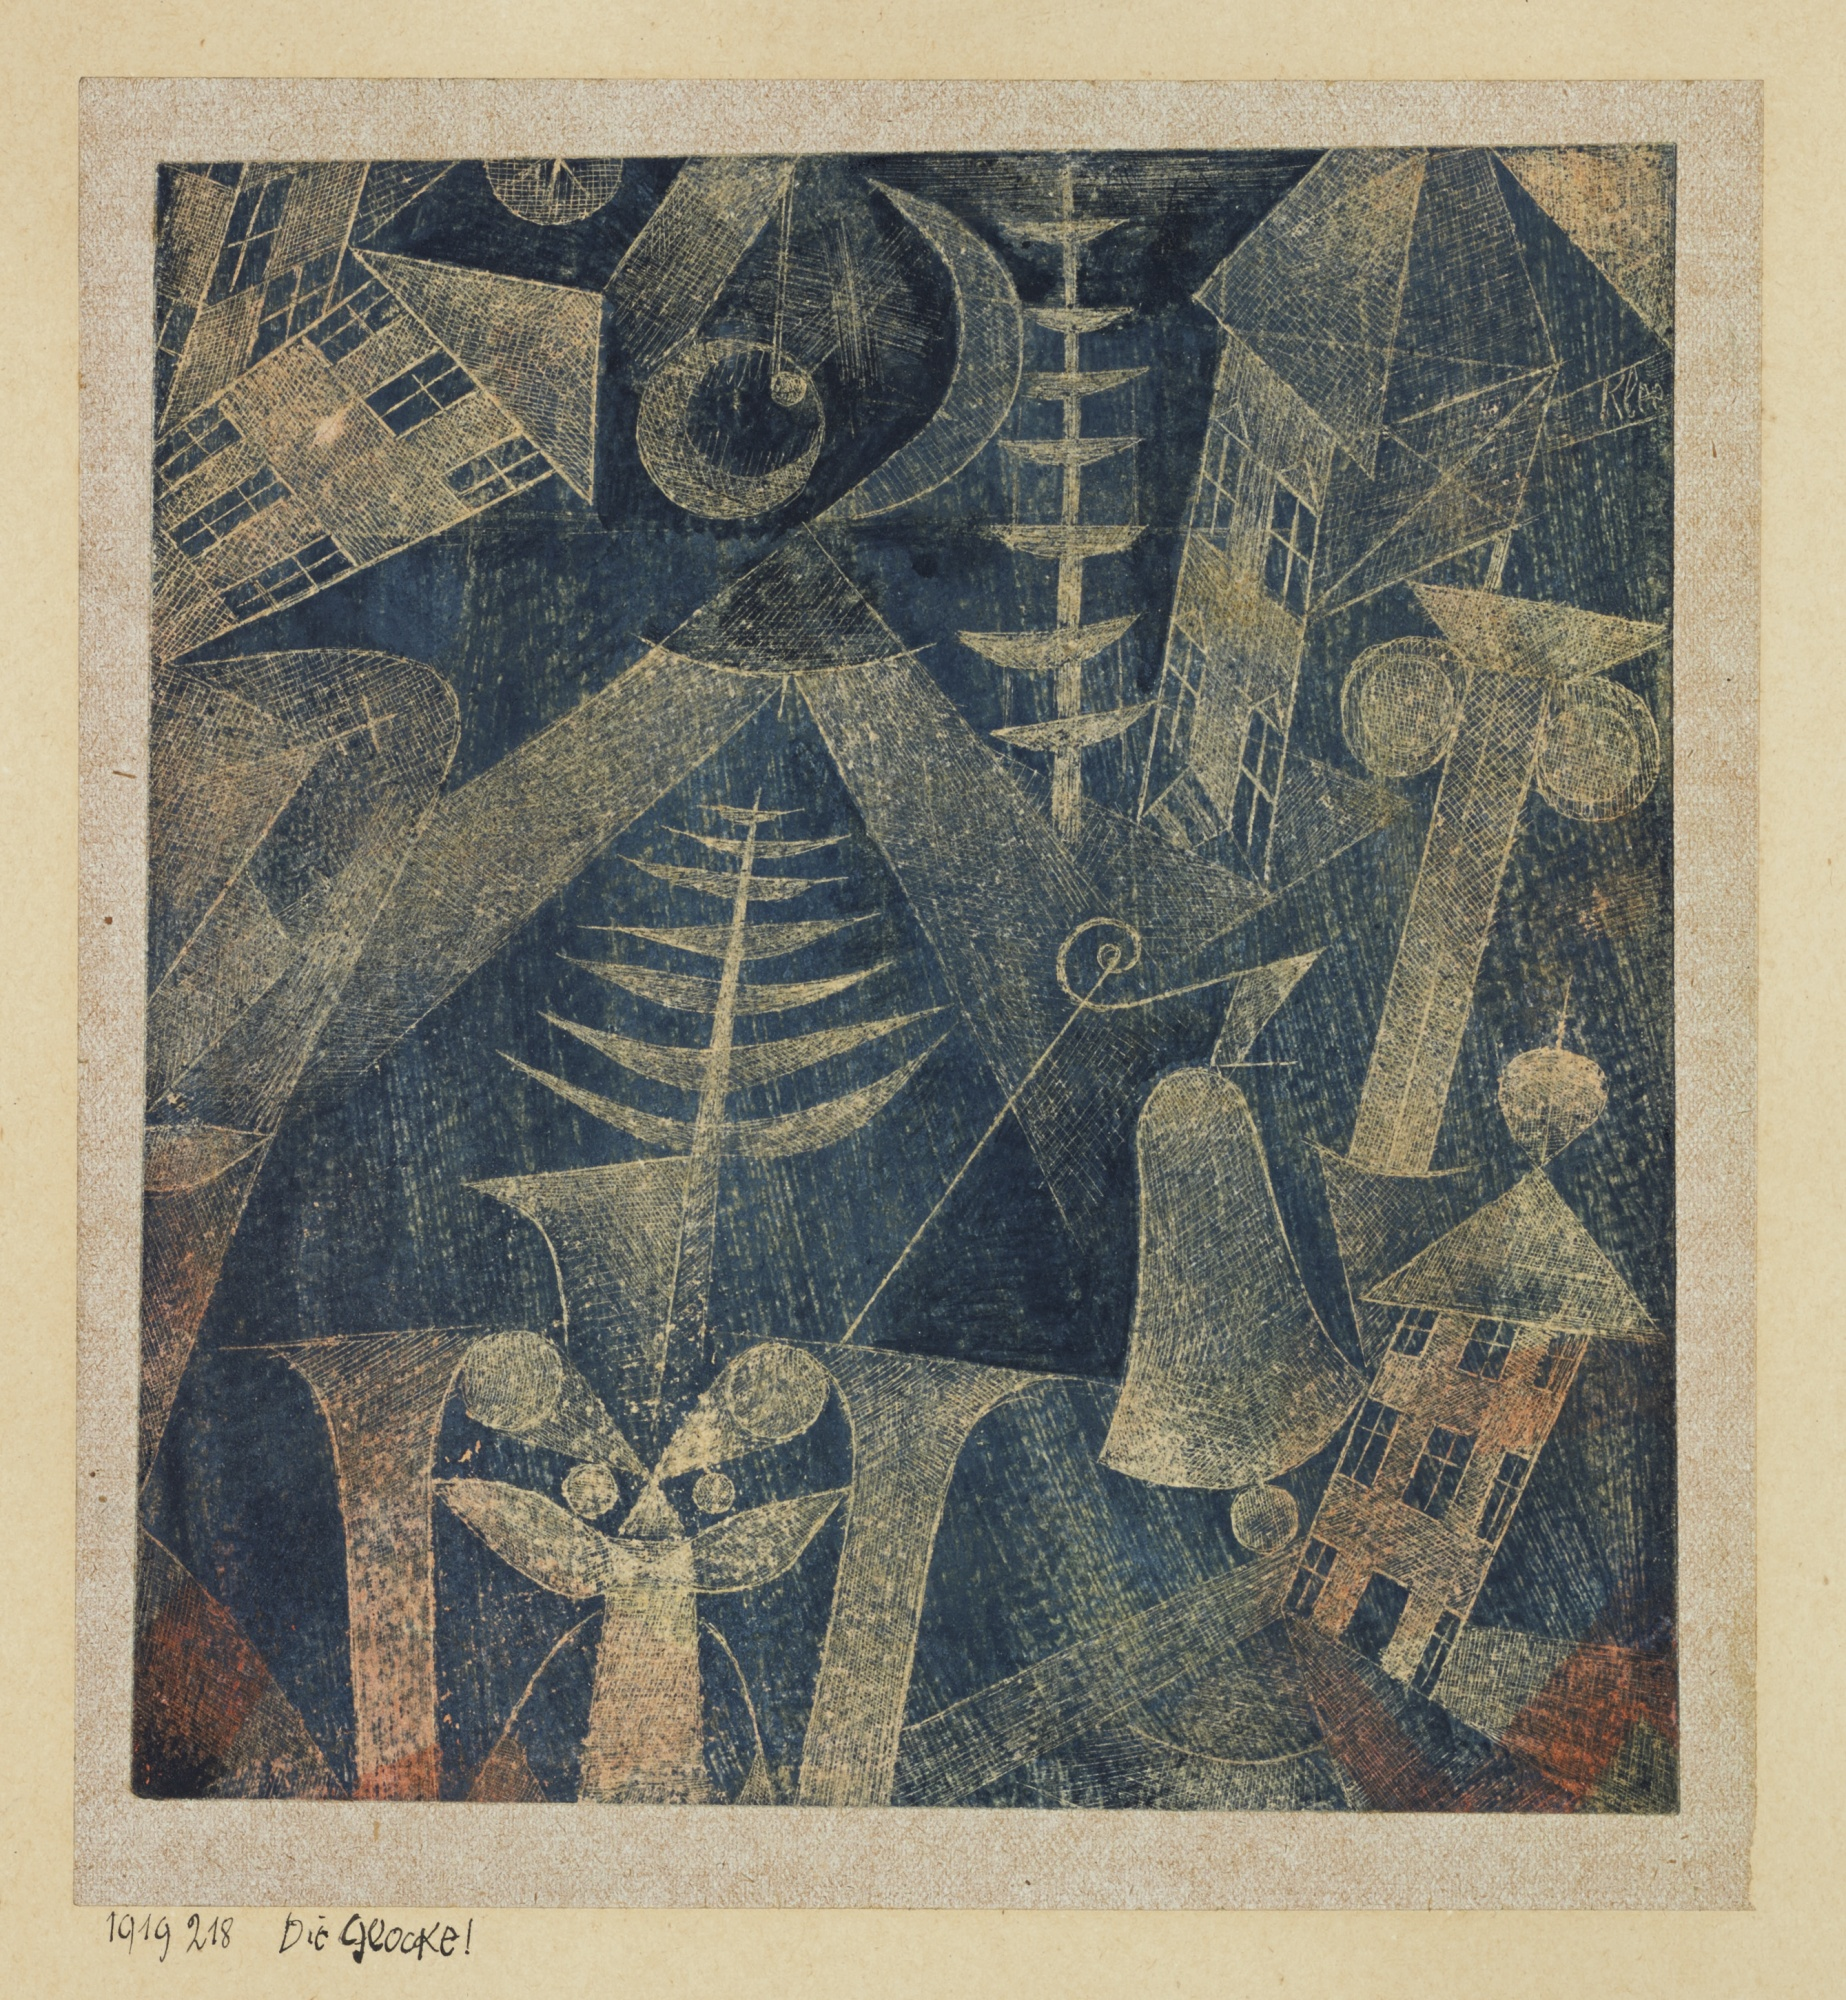 The Bell, by Paul Klee